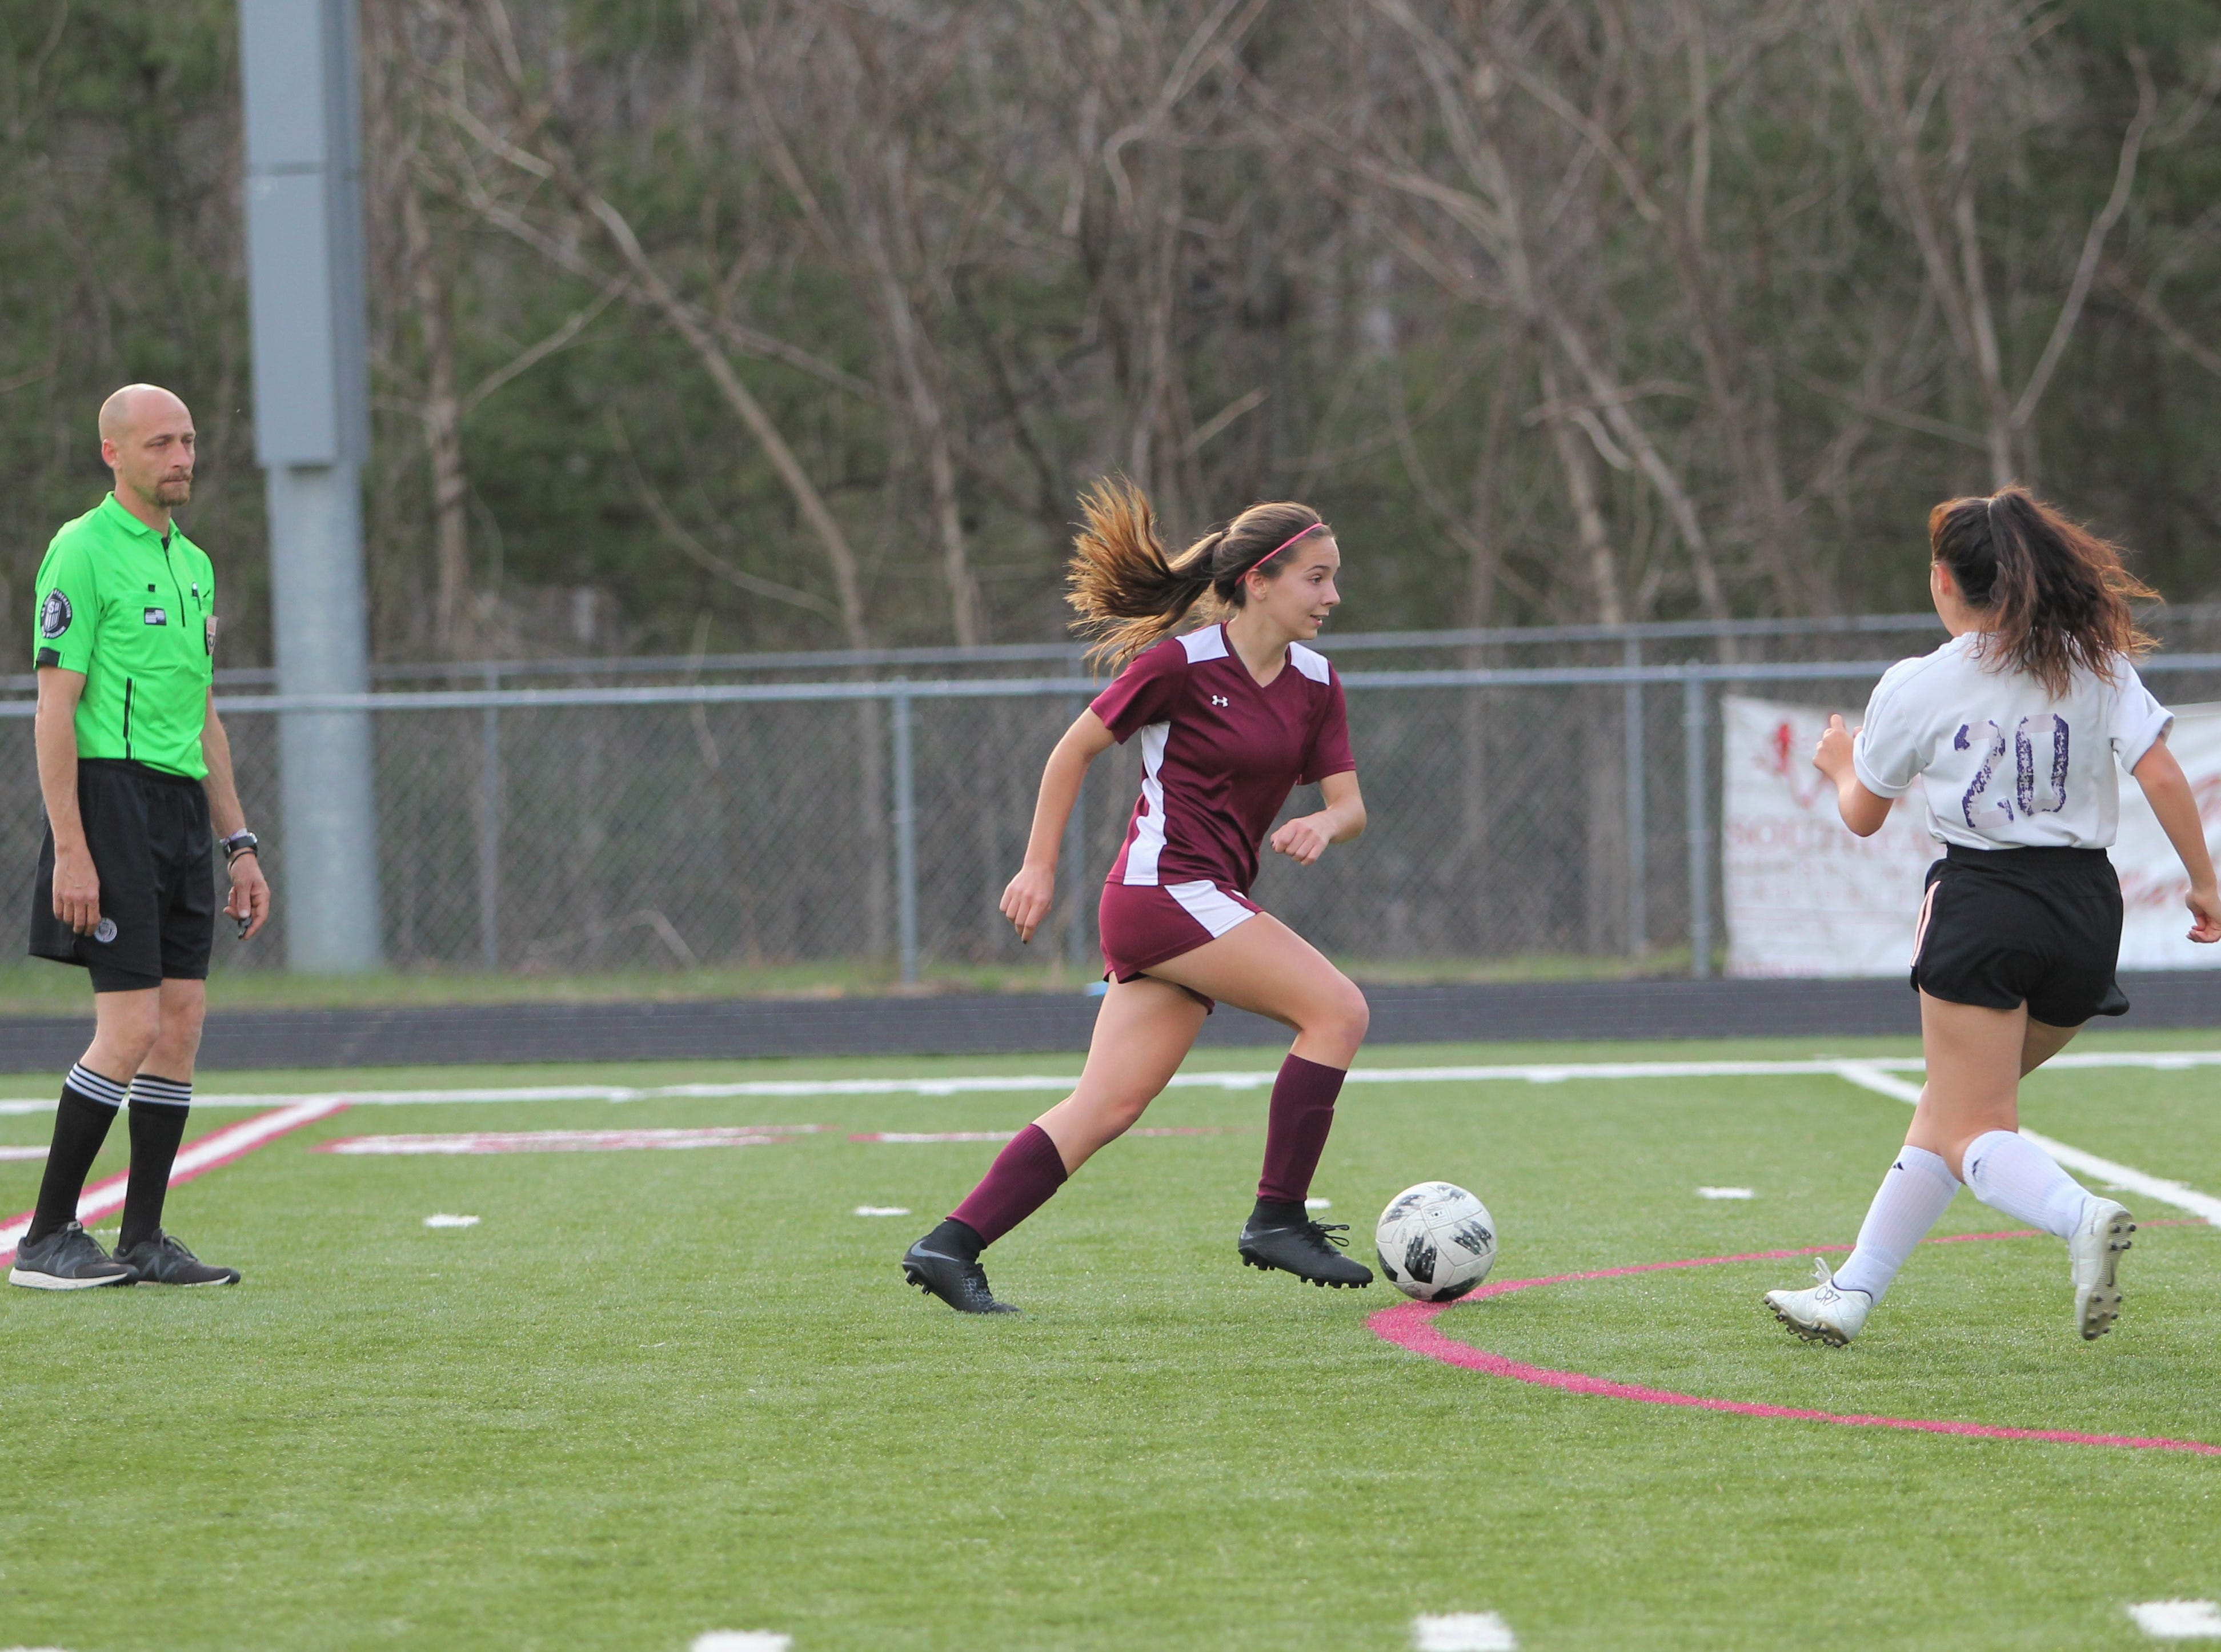 The Owen Warlassies (6-2-1) picked up their sixth straight win with a 5-0 victory at home over North Henderson on March 29.